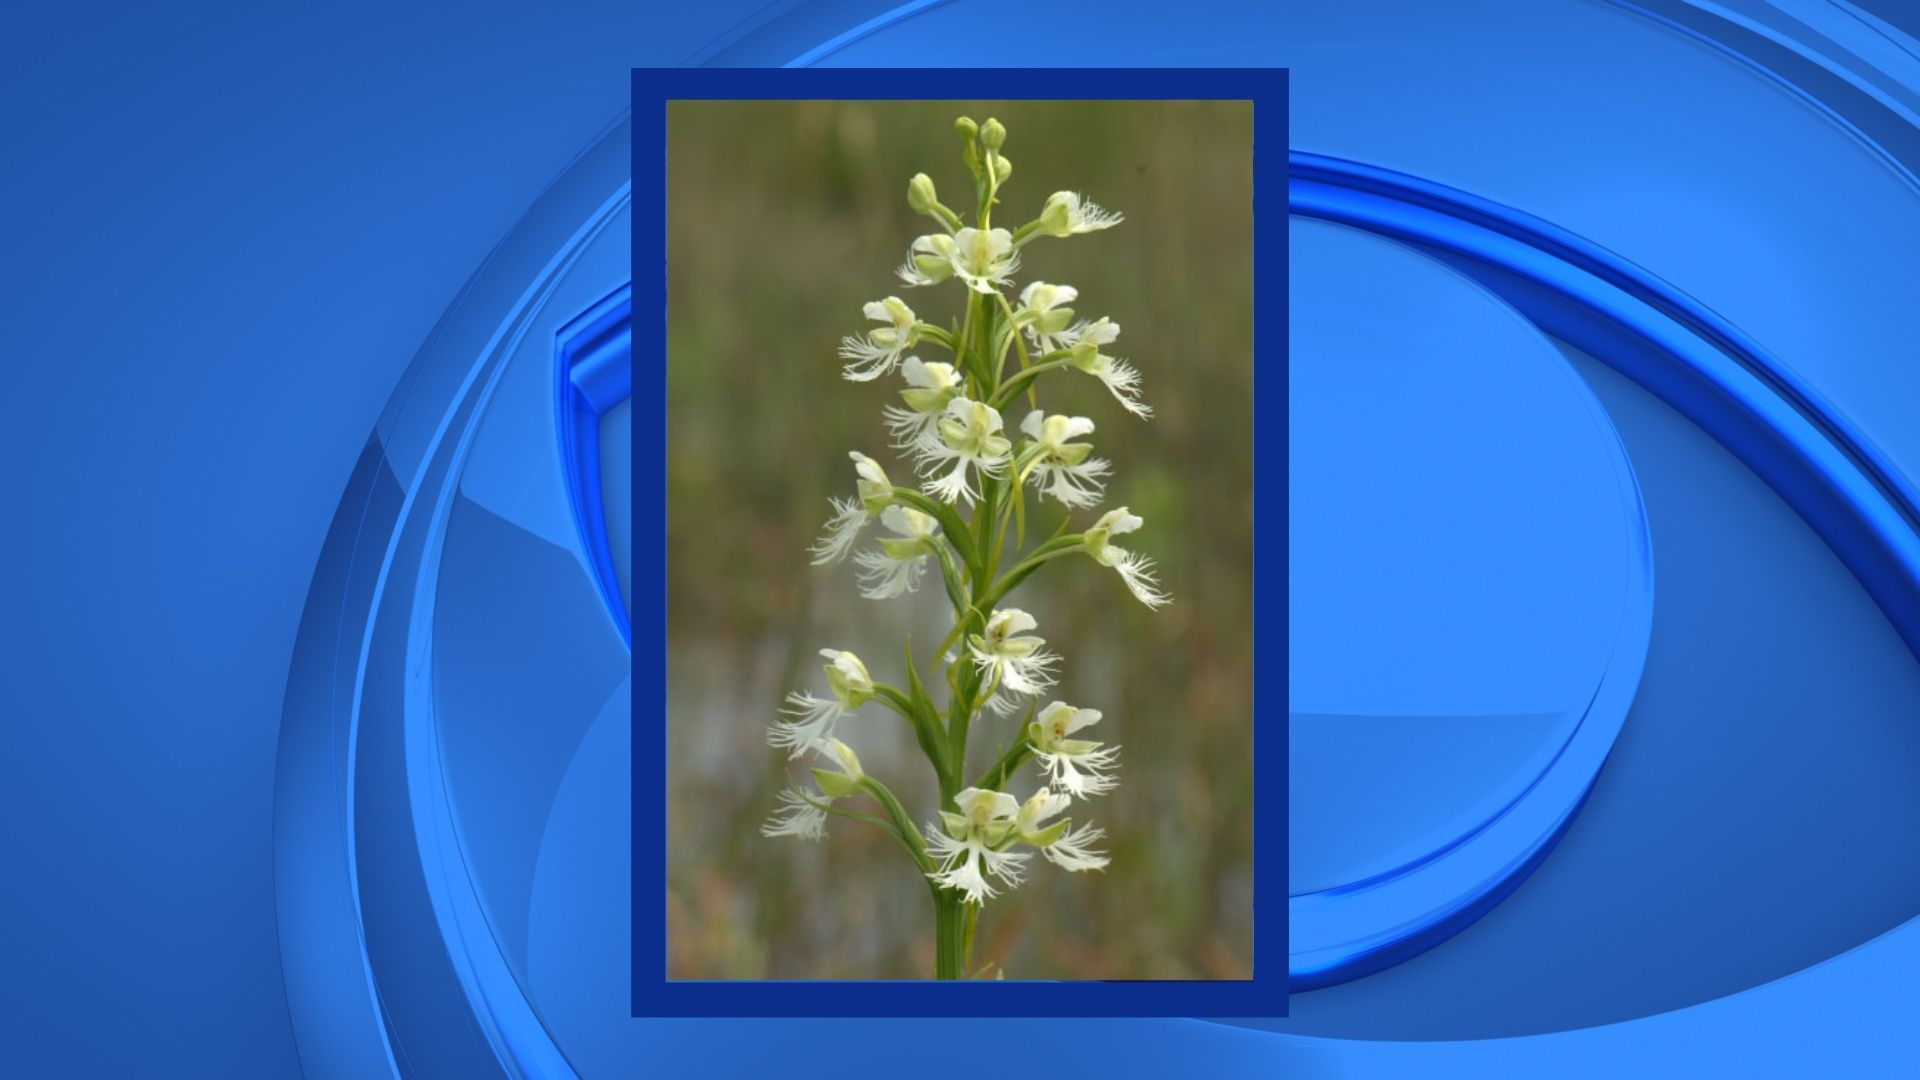 DNR discovers new populations of rare plants